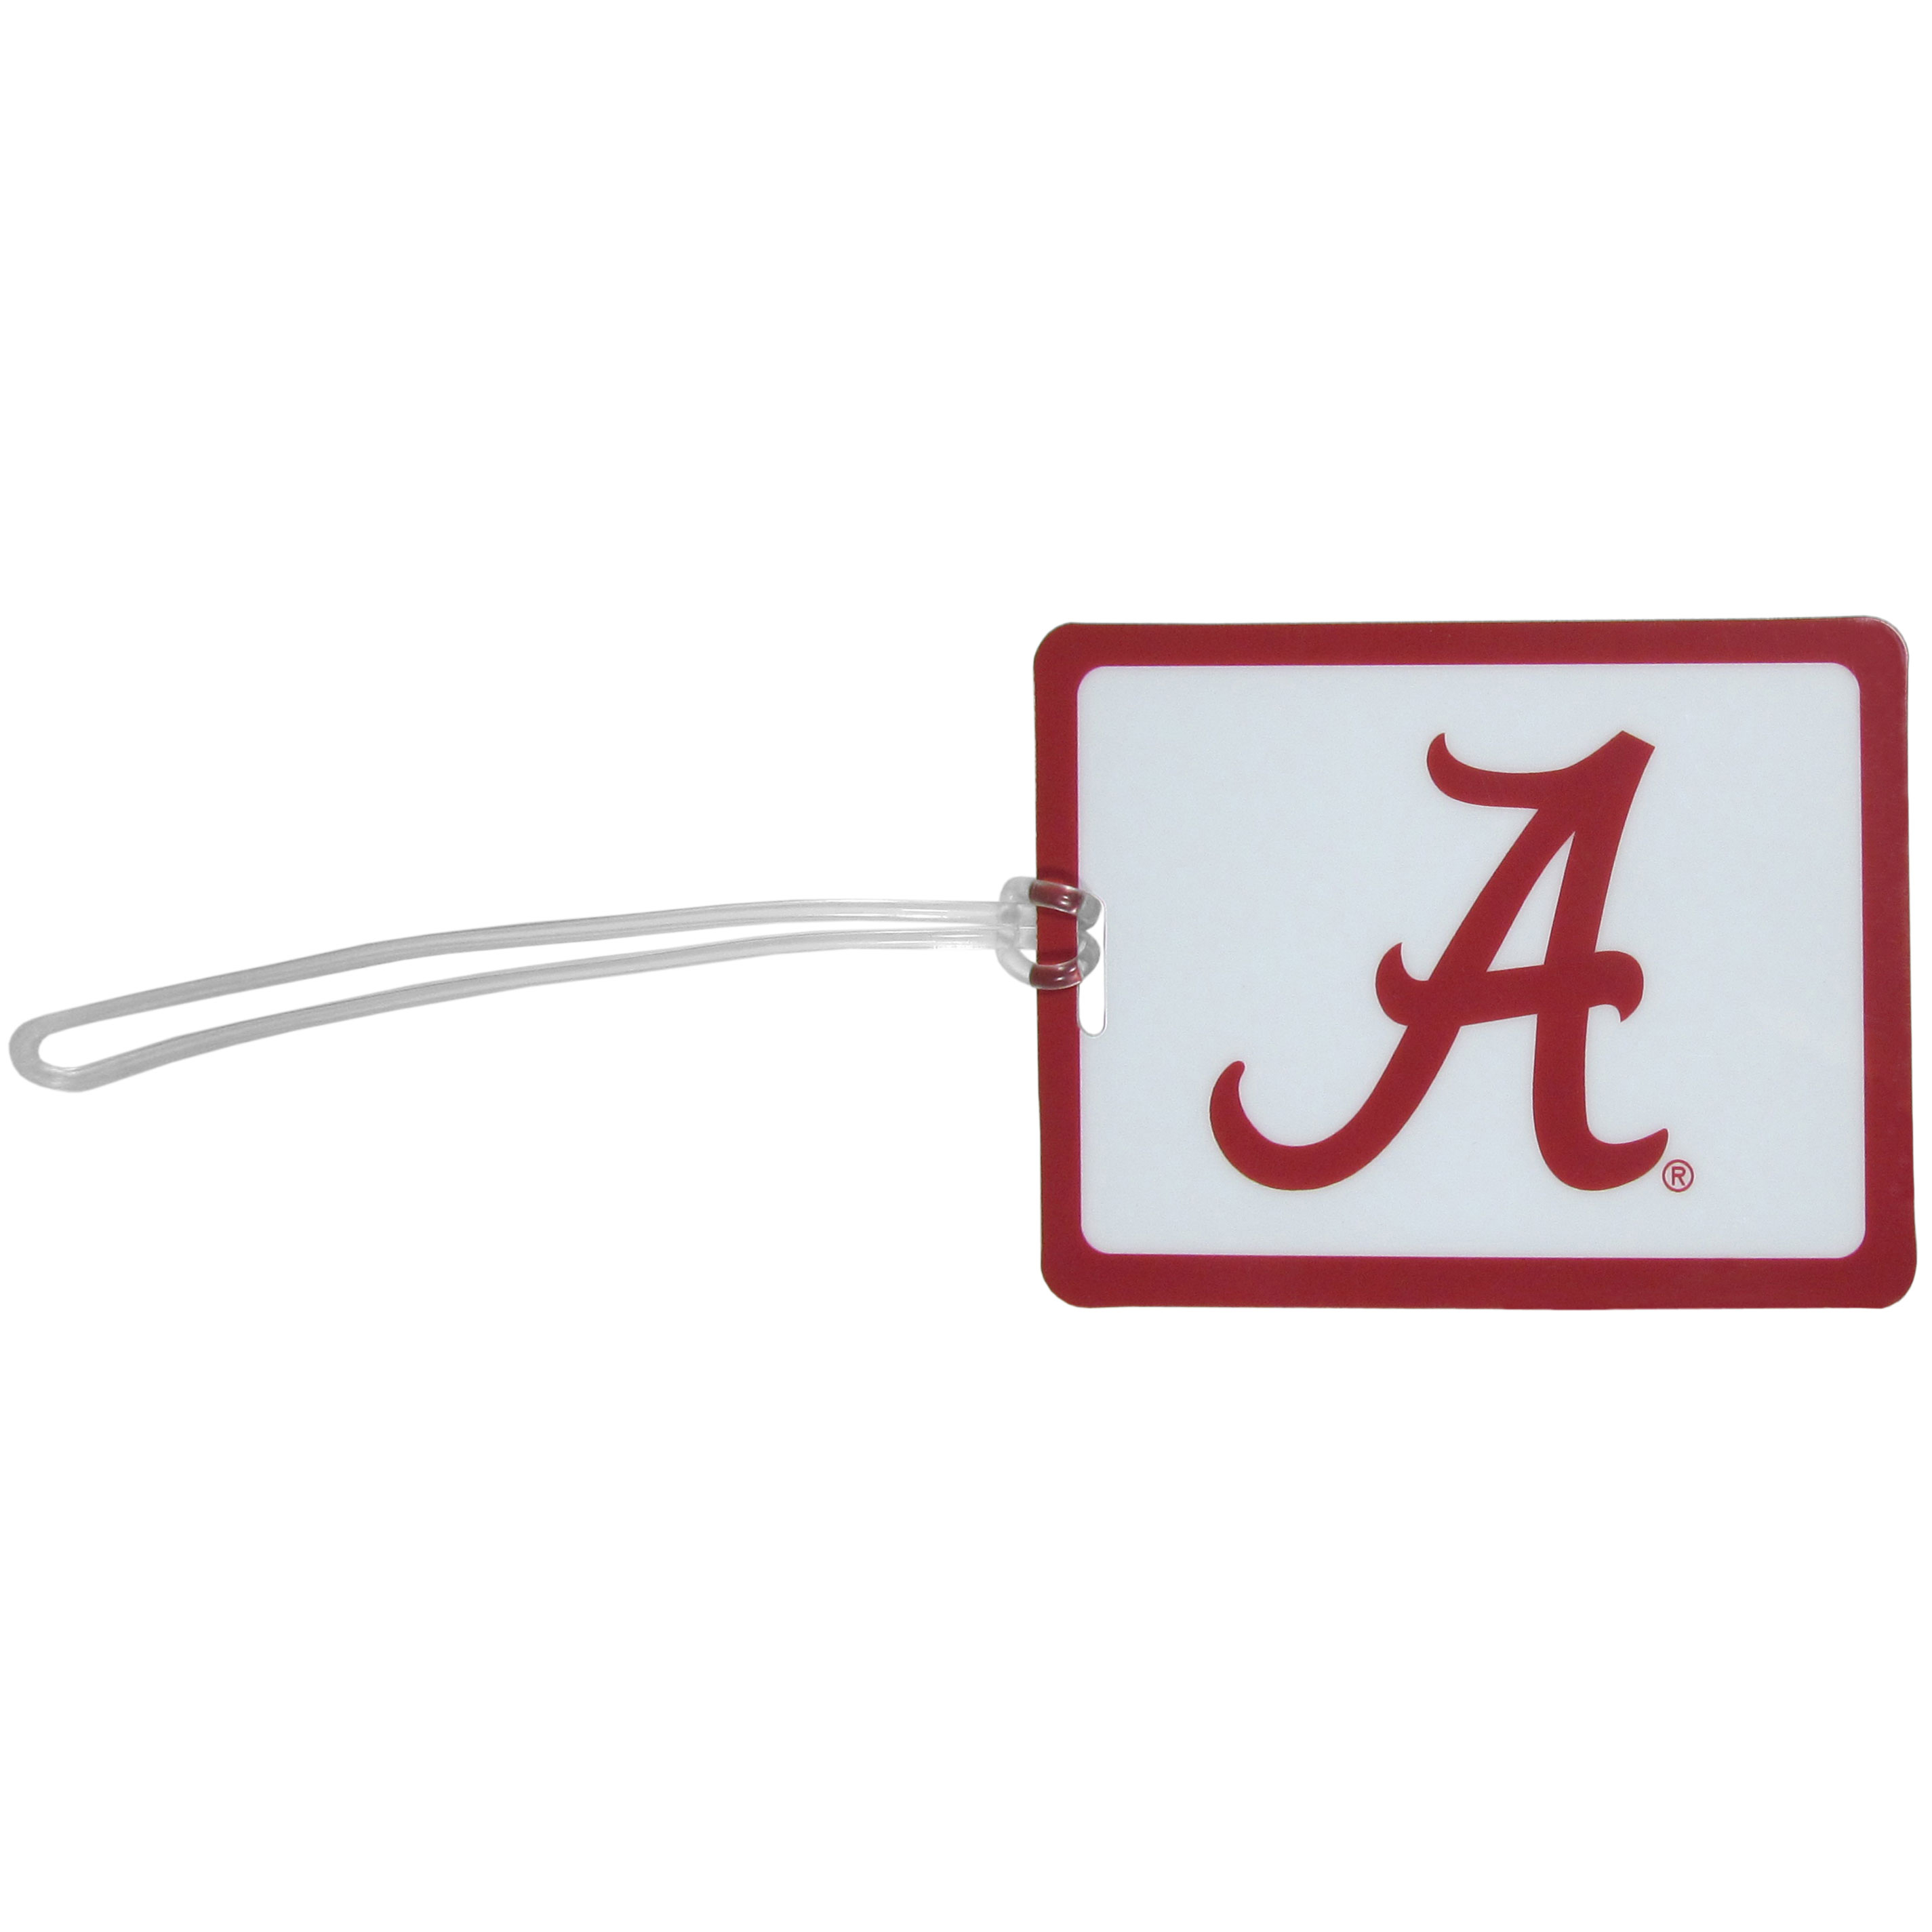 Alabama Crimson Tide Vinyl Luggage Tag - Tired of trying to spot your suitcase or bag in a sea of luggage? Try our large and colorful Alabama Crimson Tide luggage tag set. The tag is 4x3 inches and has a 5 inch cord to attach it easily to your bags, backpacks or luggage. The front of the tag features the team logo in a bright, team colored background and you can write you name, address and phone number on the back of the tag.